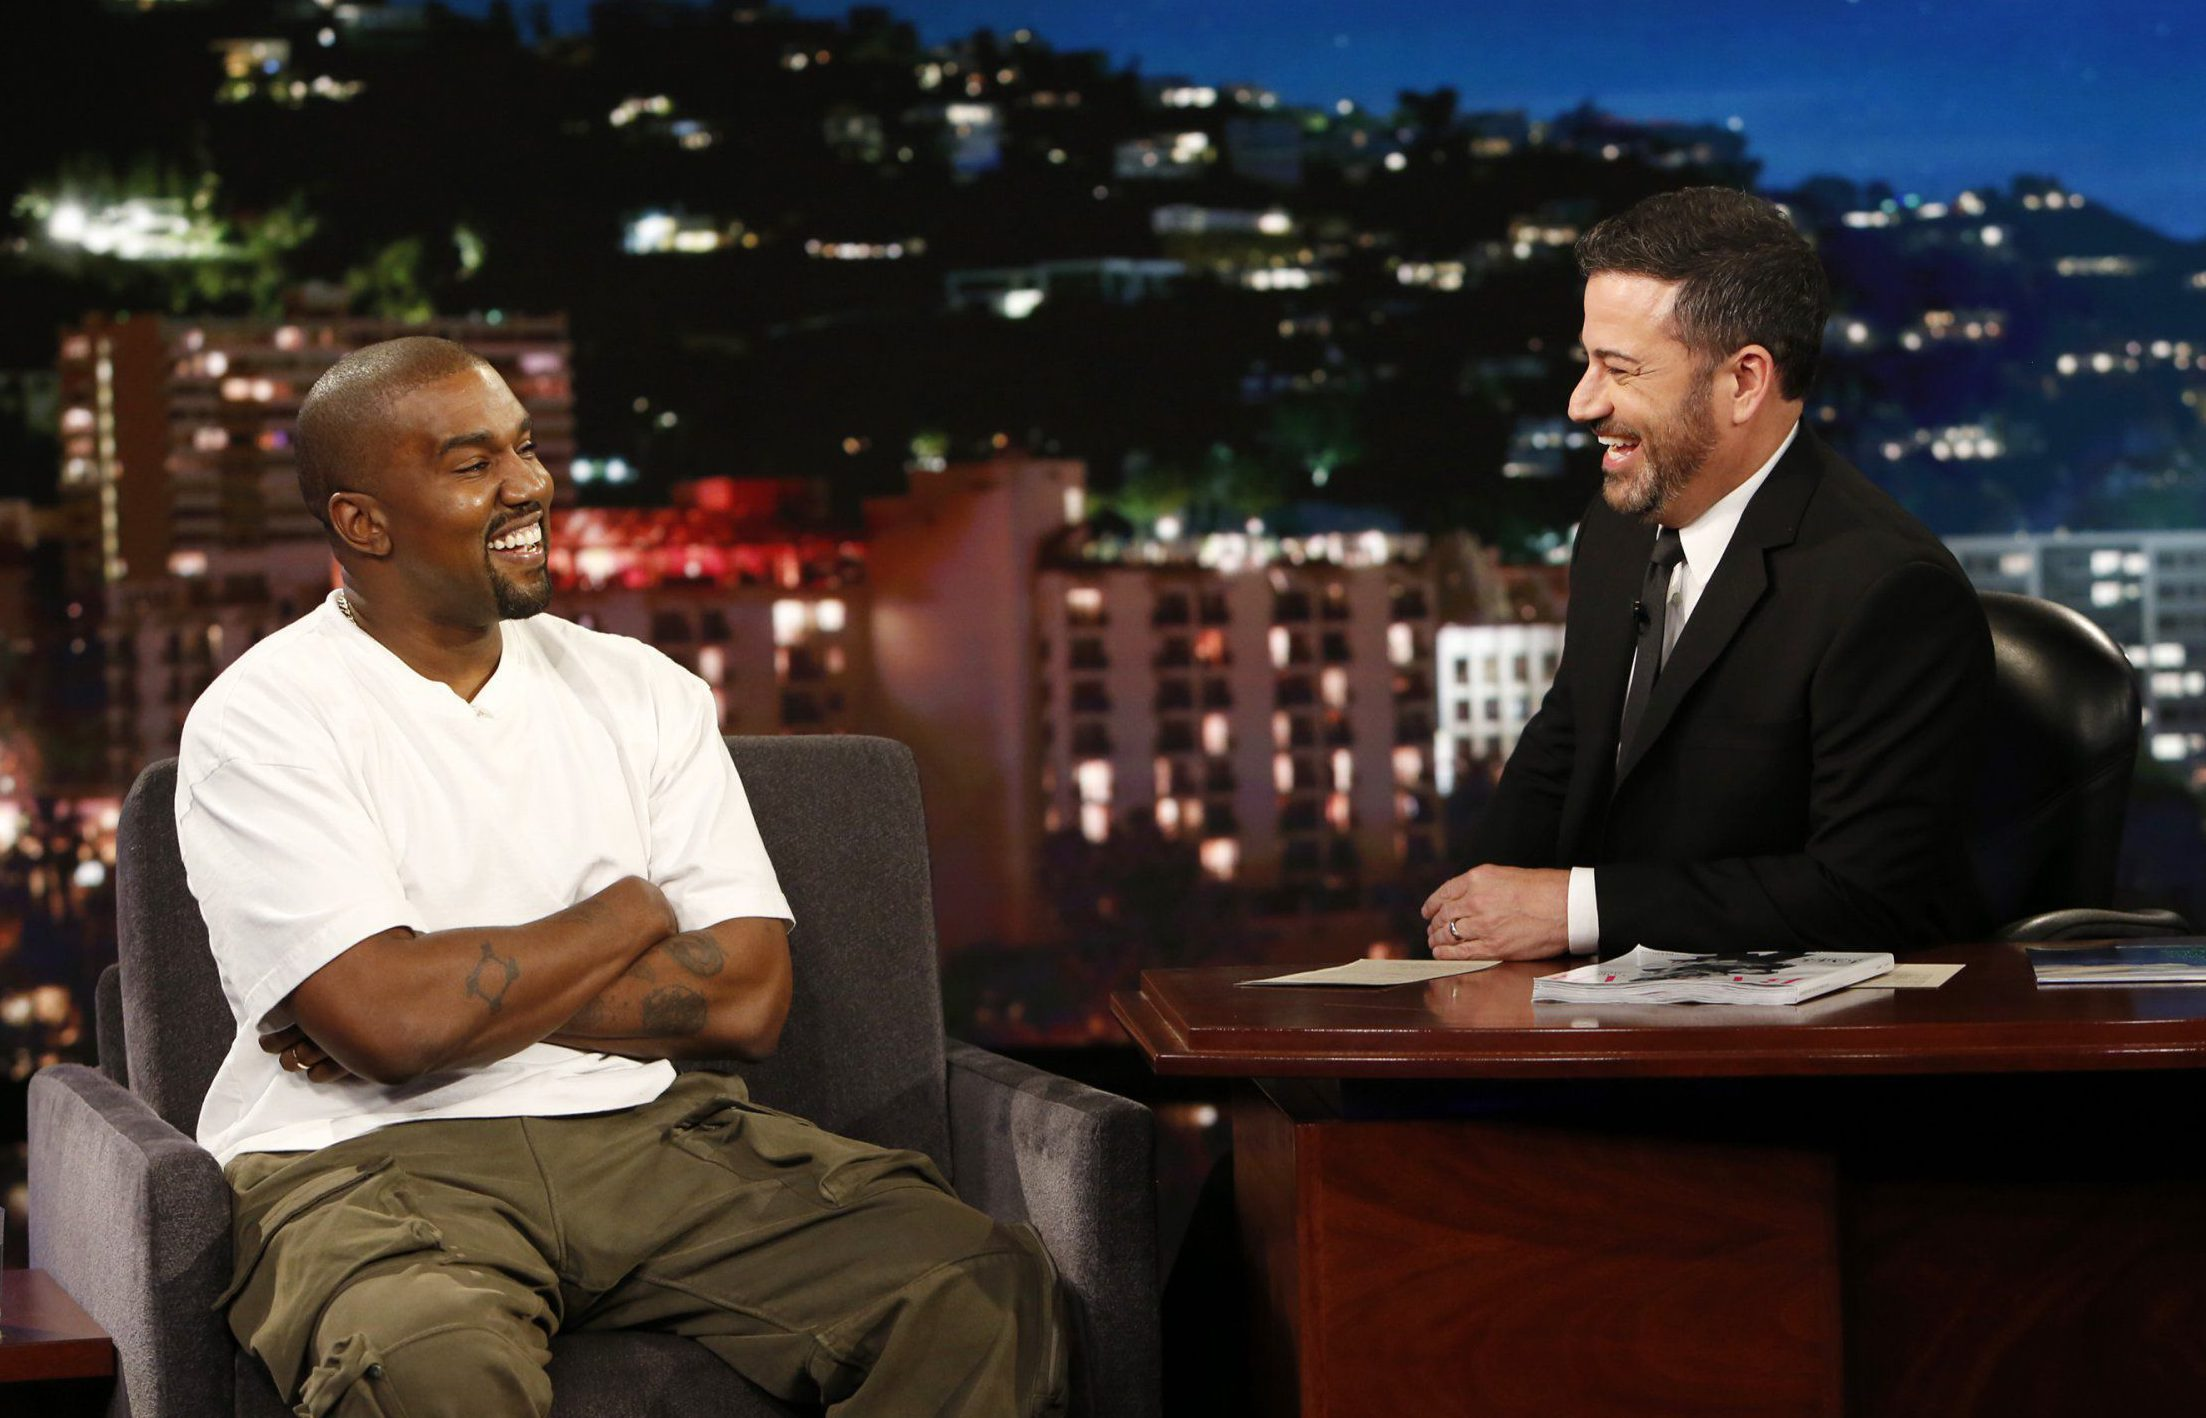 "JIMMY KIMMEL LIVE! - ""Jimmy Kimmel Live!"" airs every weeknight at 11:35 p.m. EDT and features a diverse lineup of guests that include celebrities, athletes, musical acts, comedians and human interest subjects, along with comedy bits and a house band. The guests for Thursday, August 9 included Kanye West (""Ye""), and Awkwafina (""Crazy Rich Asians""). (Randy Holmes/ABC via Getty Images) KANYE WEST, JIMMY KIMMEL"